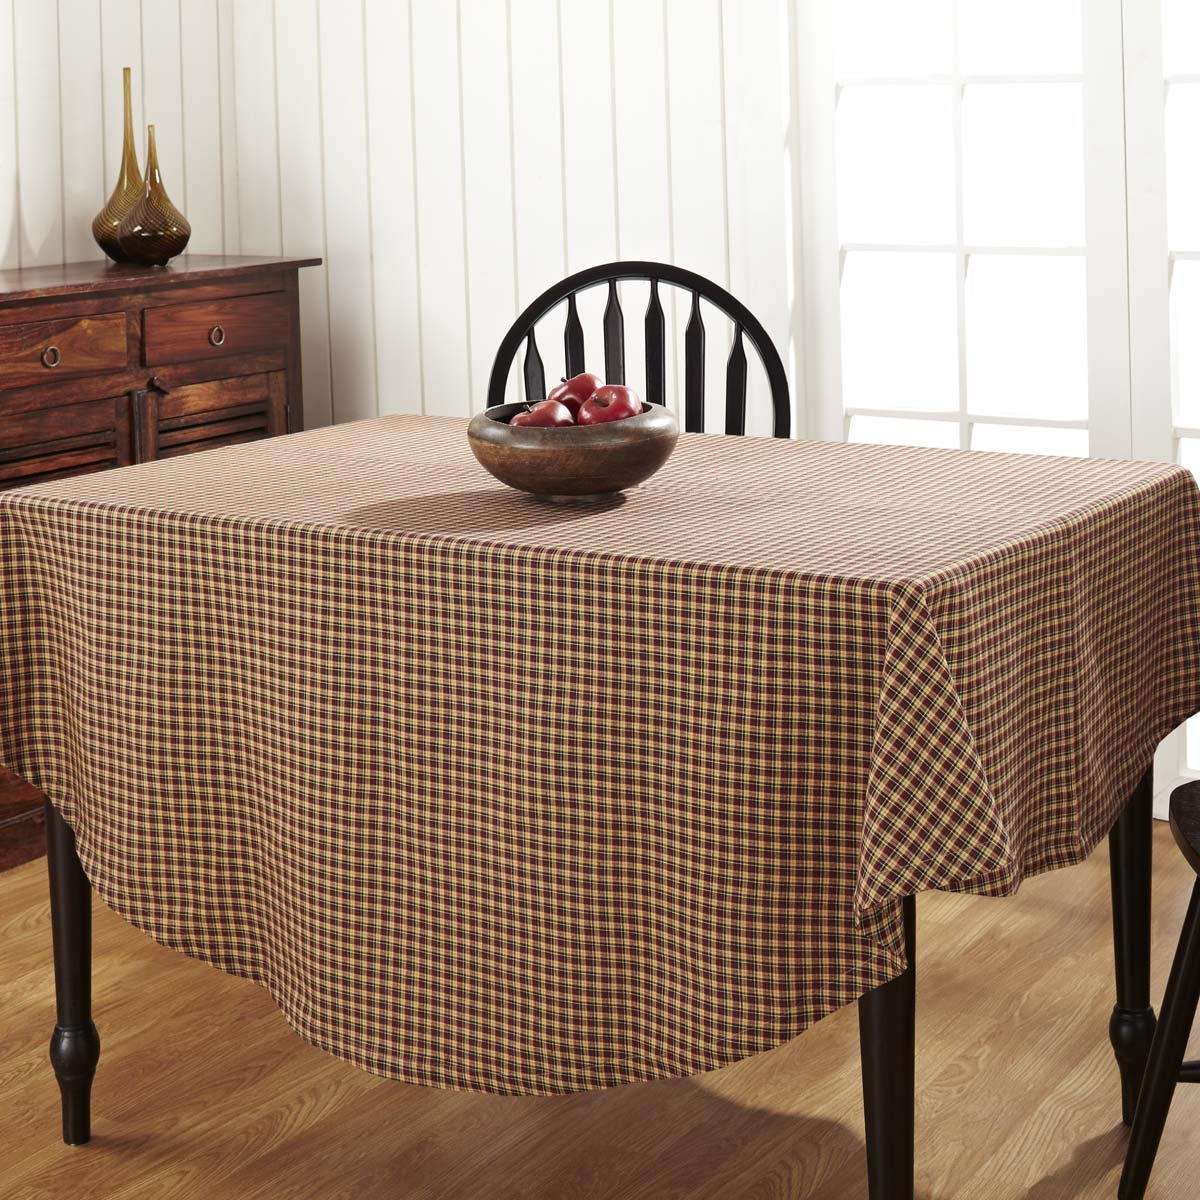 VHC Brands 14640 Patriotic Patch Plaid Table Cloth 70 Round